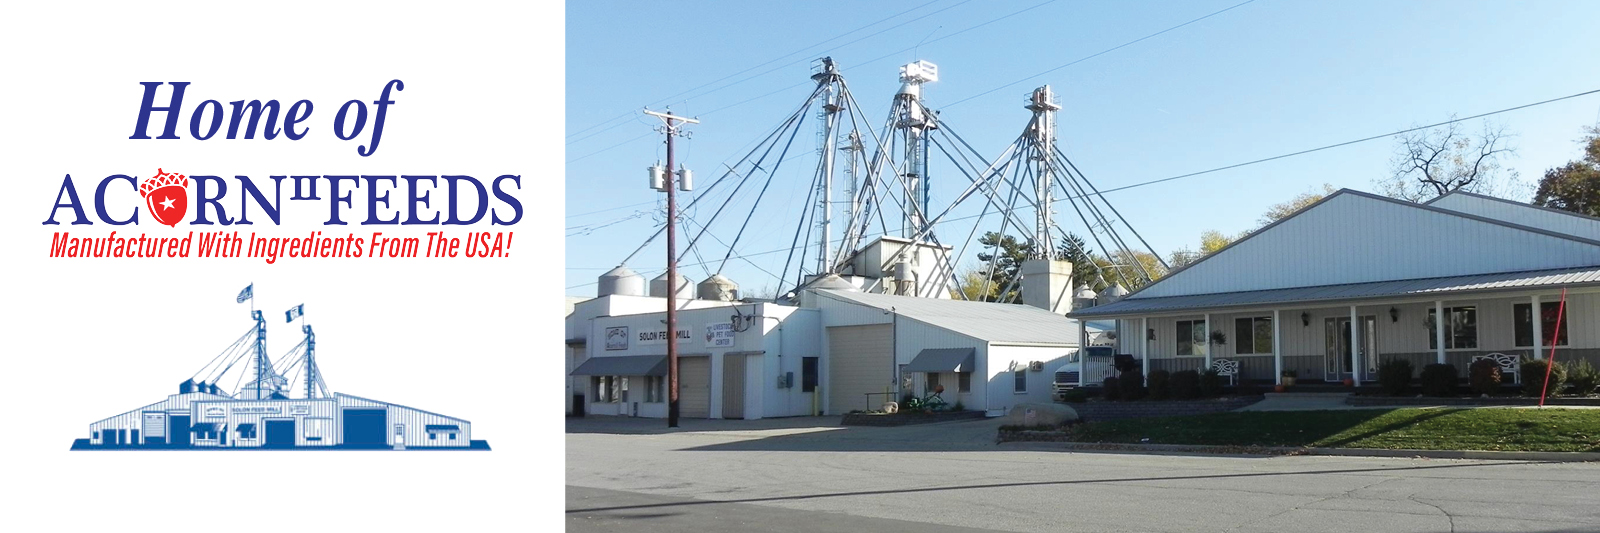 Solon Feed Mill Acorn Feeds